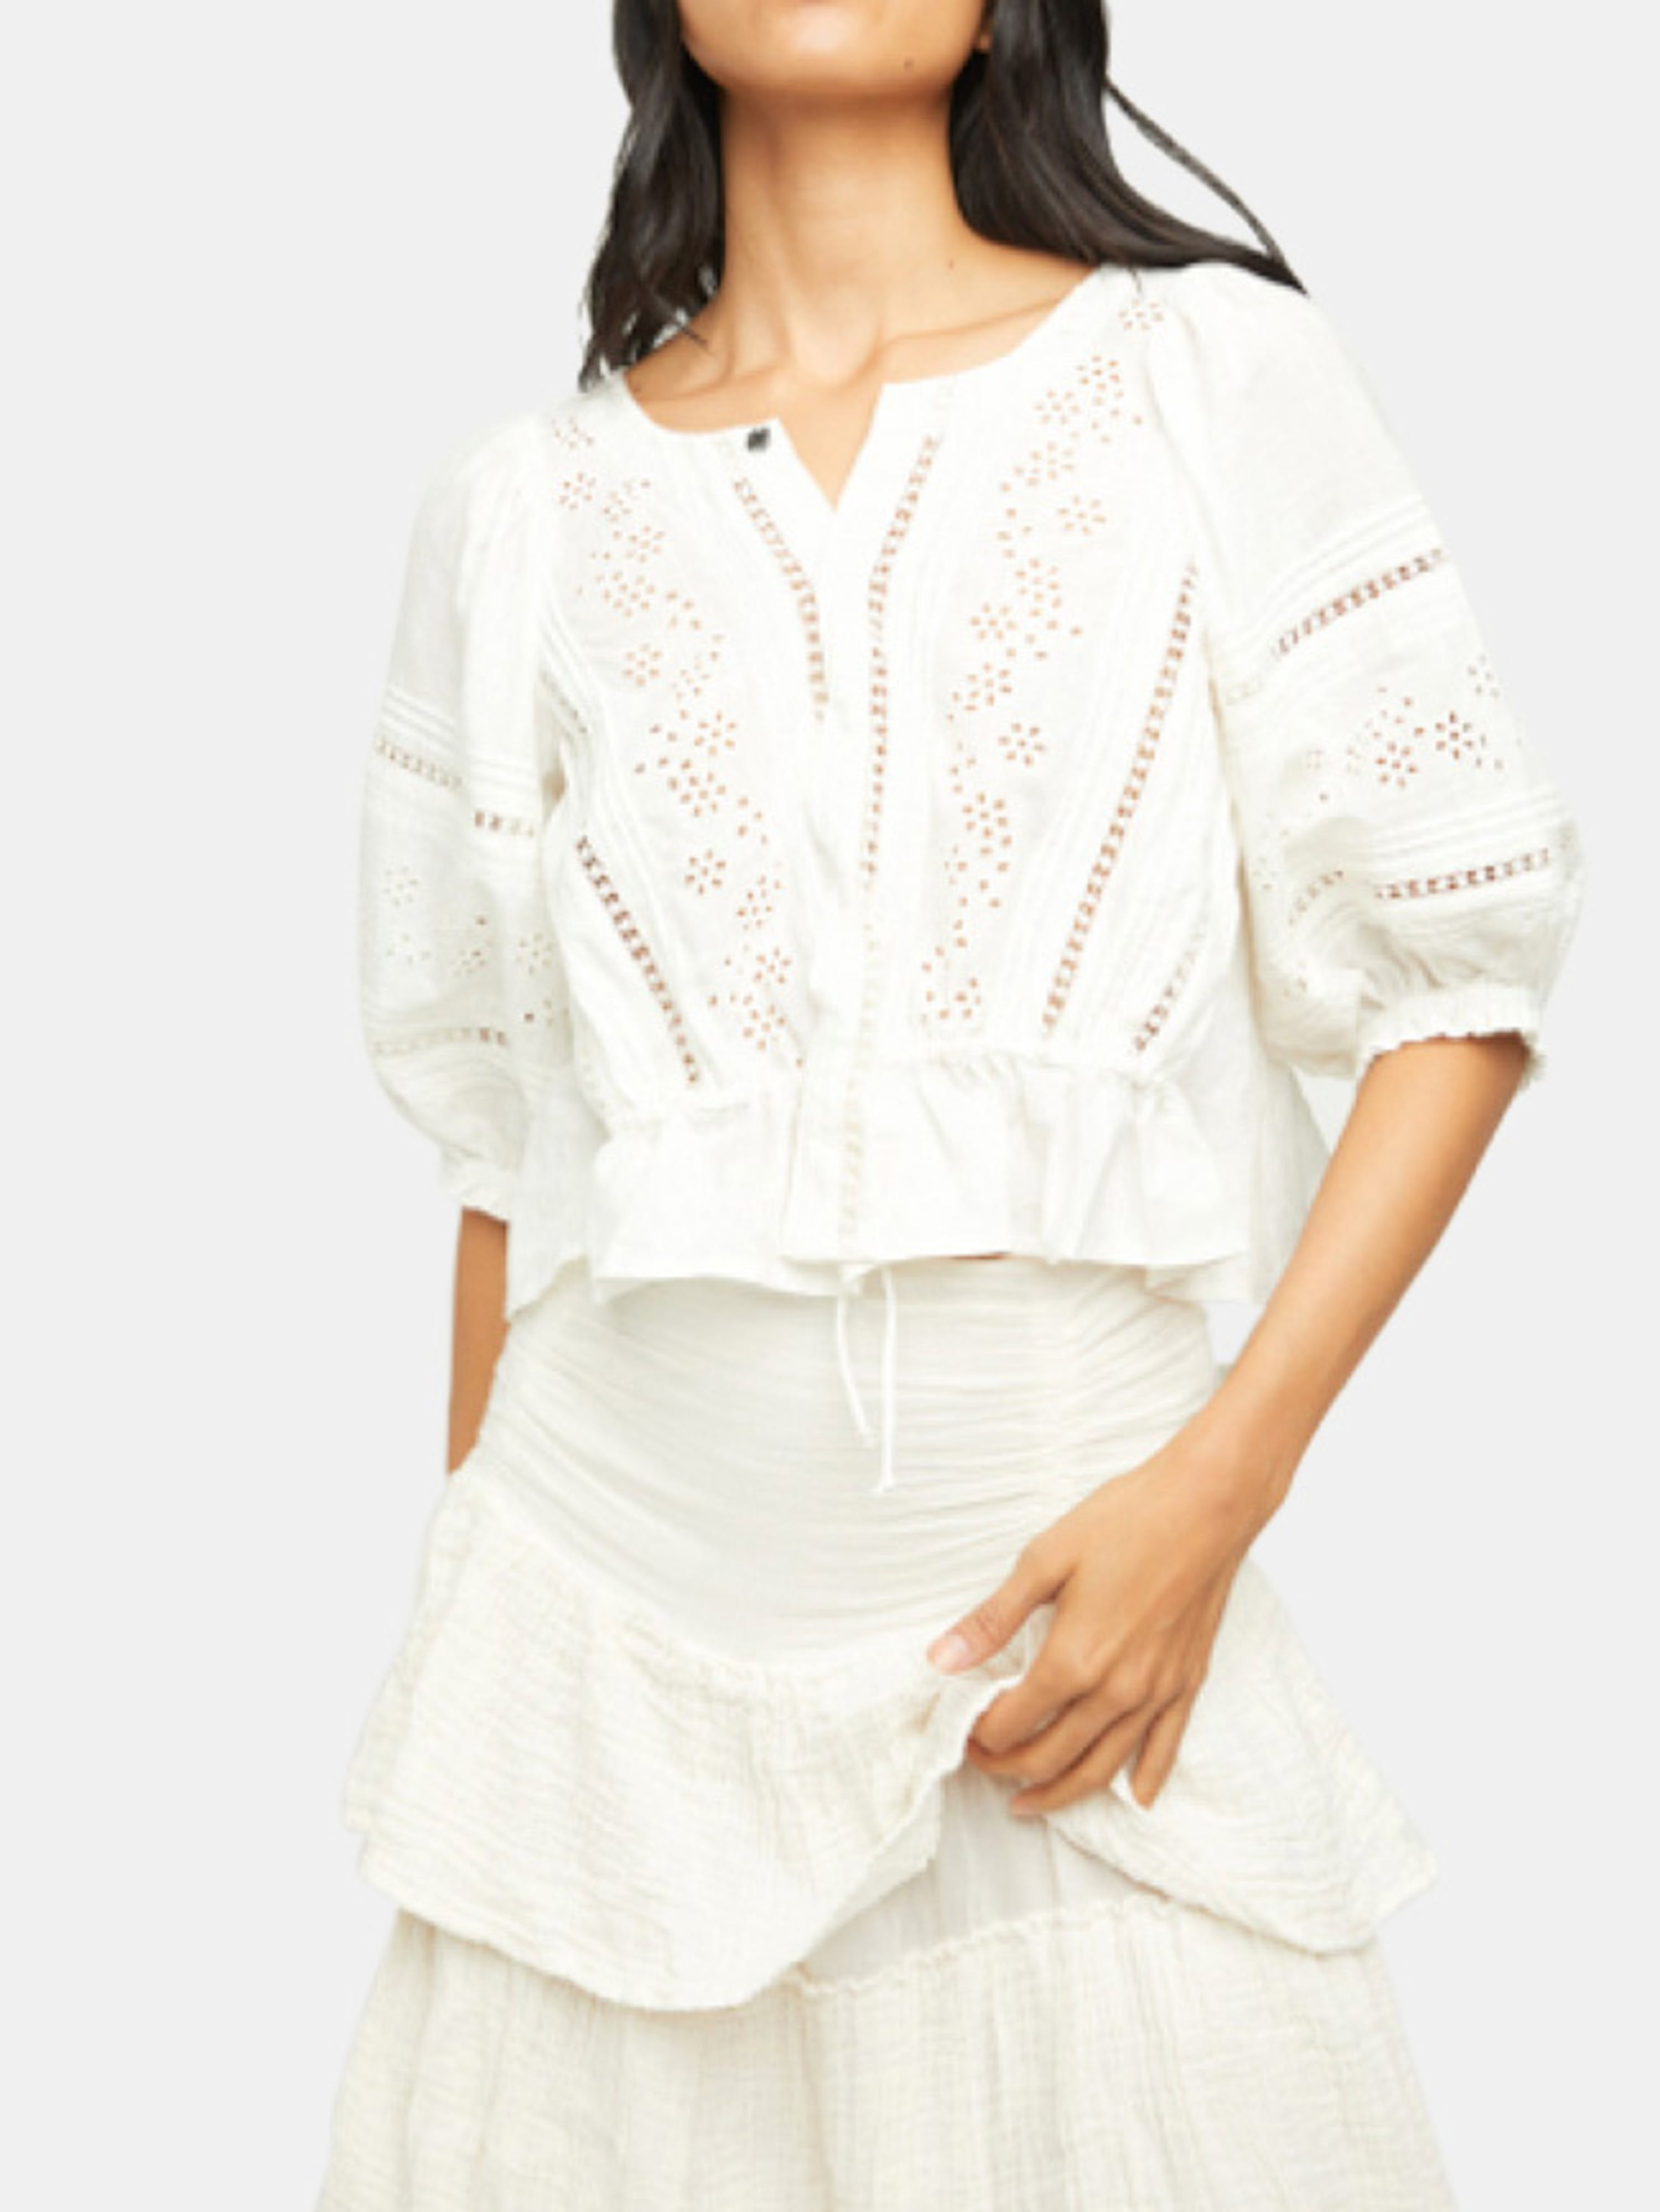 Free People Cottons FREE PEOPLE DAISY CHAINS EYELET TOP